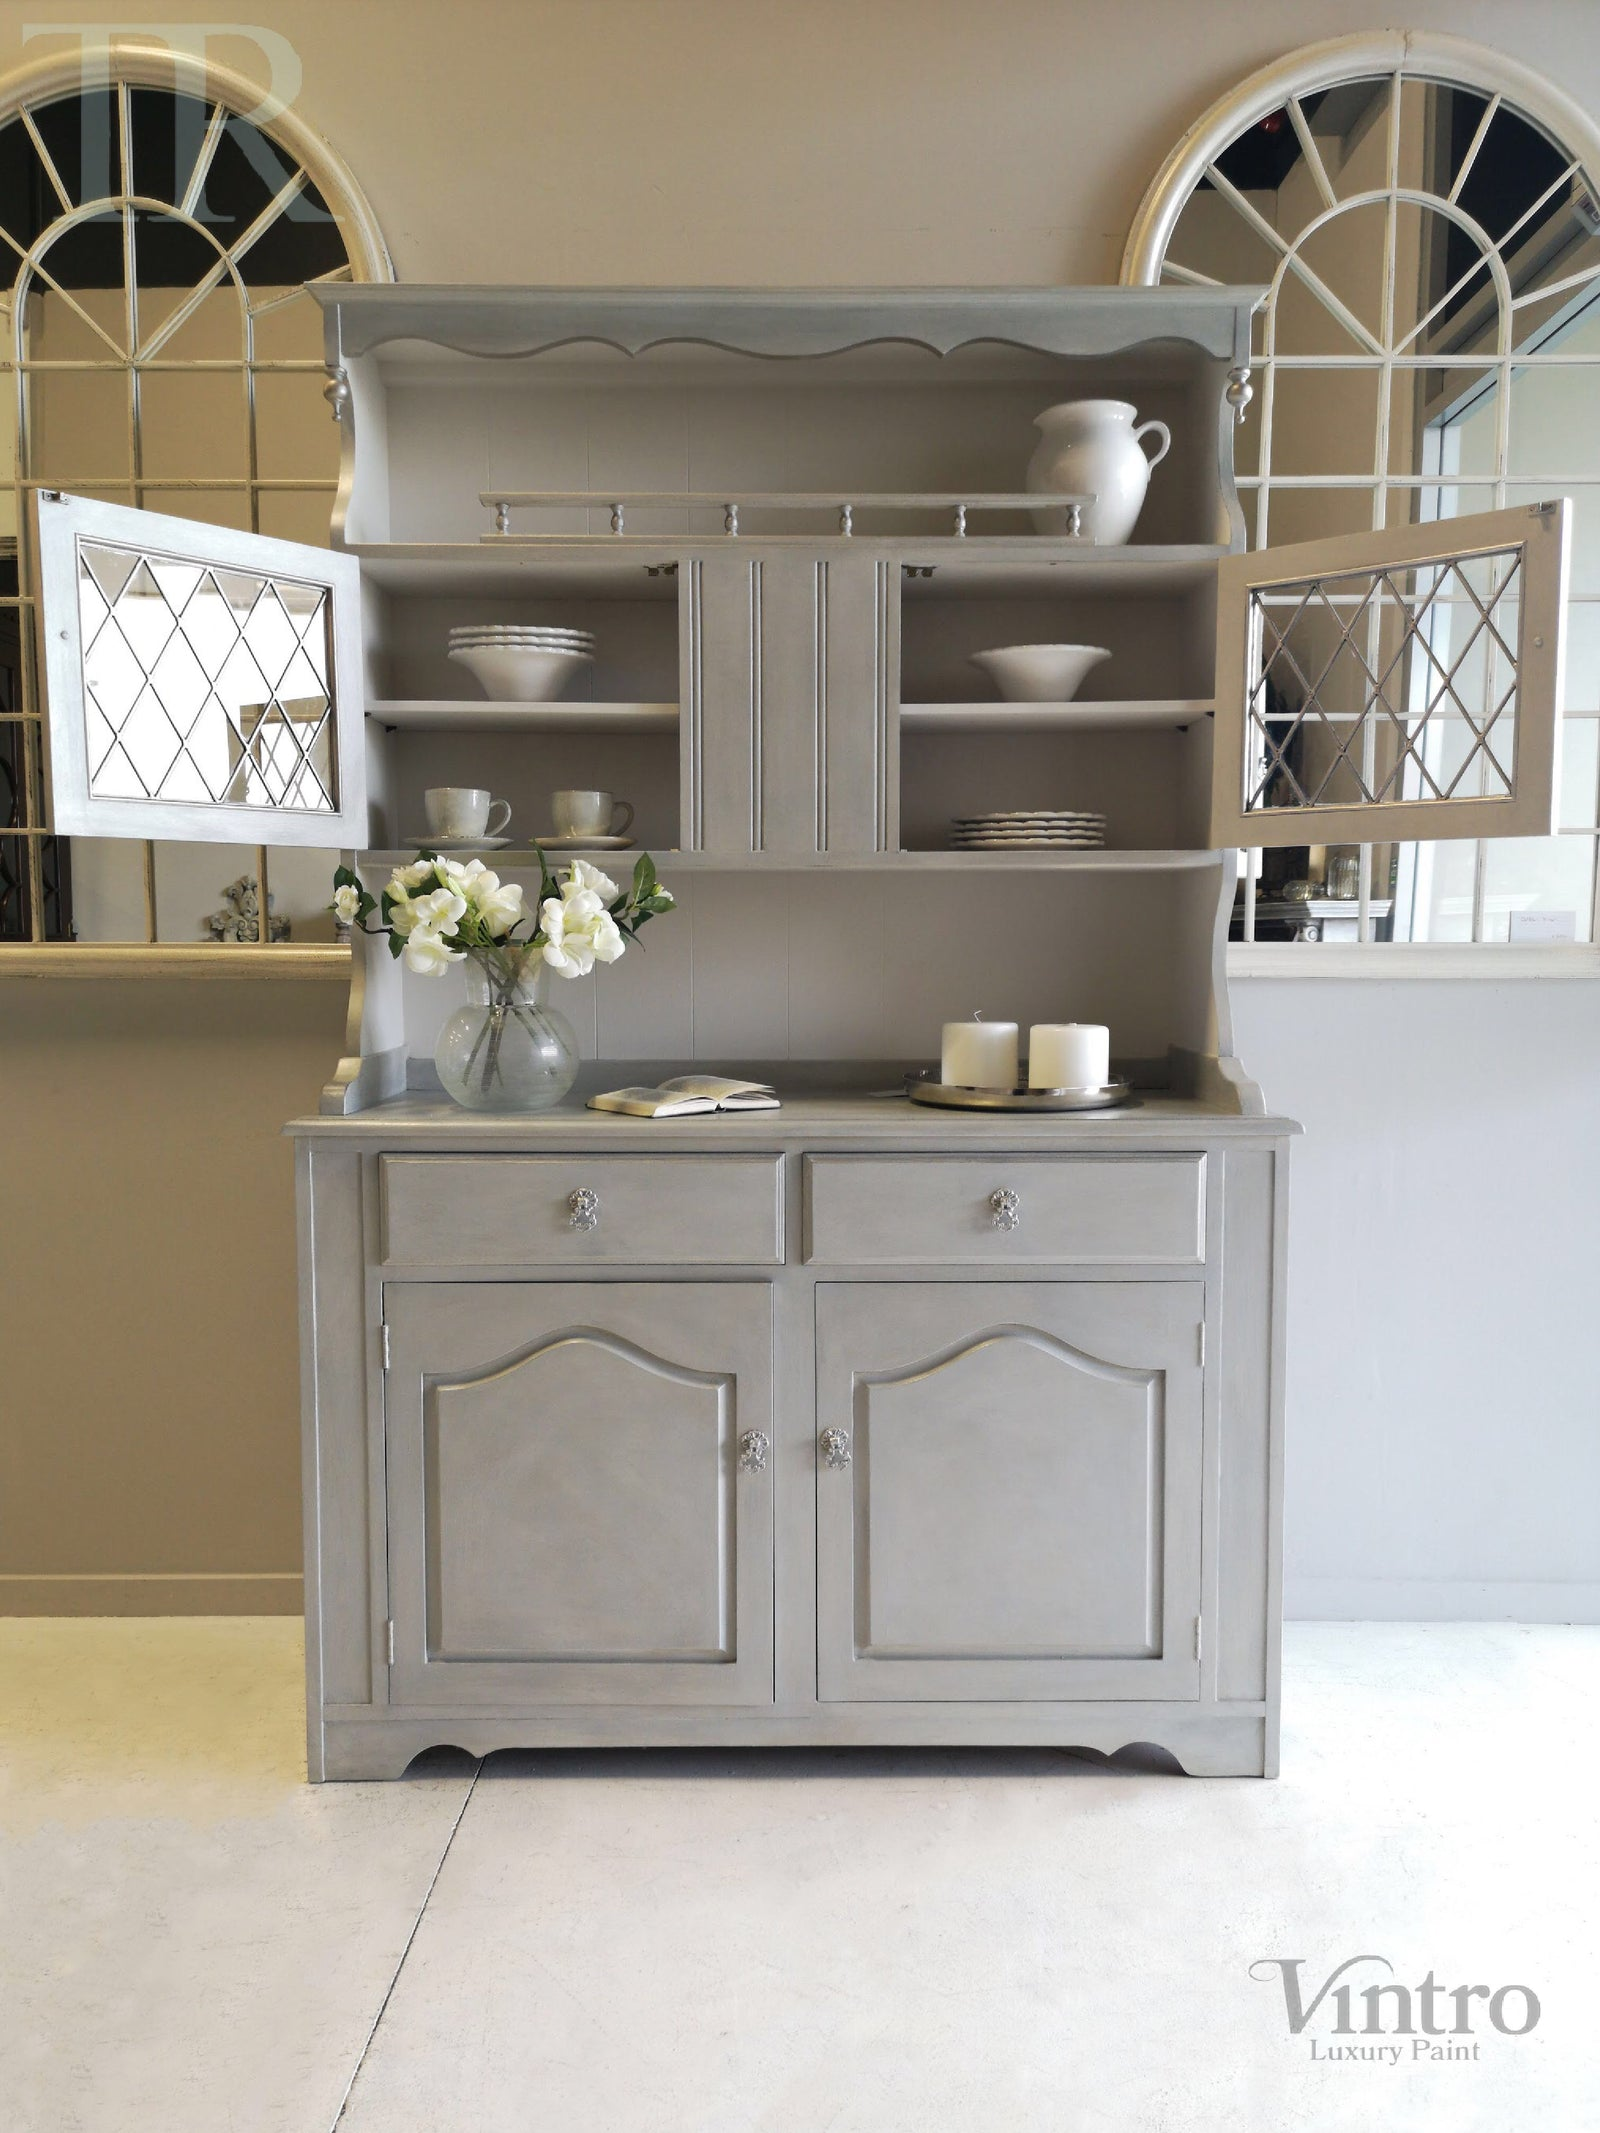 Commissioned Hutch Dresser in Vintro Chalk Paint with a silver lustre